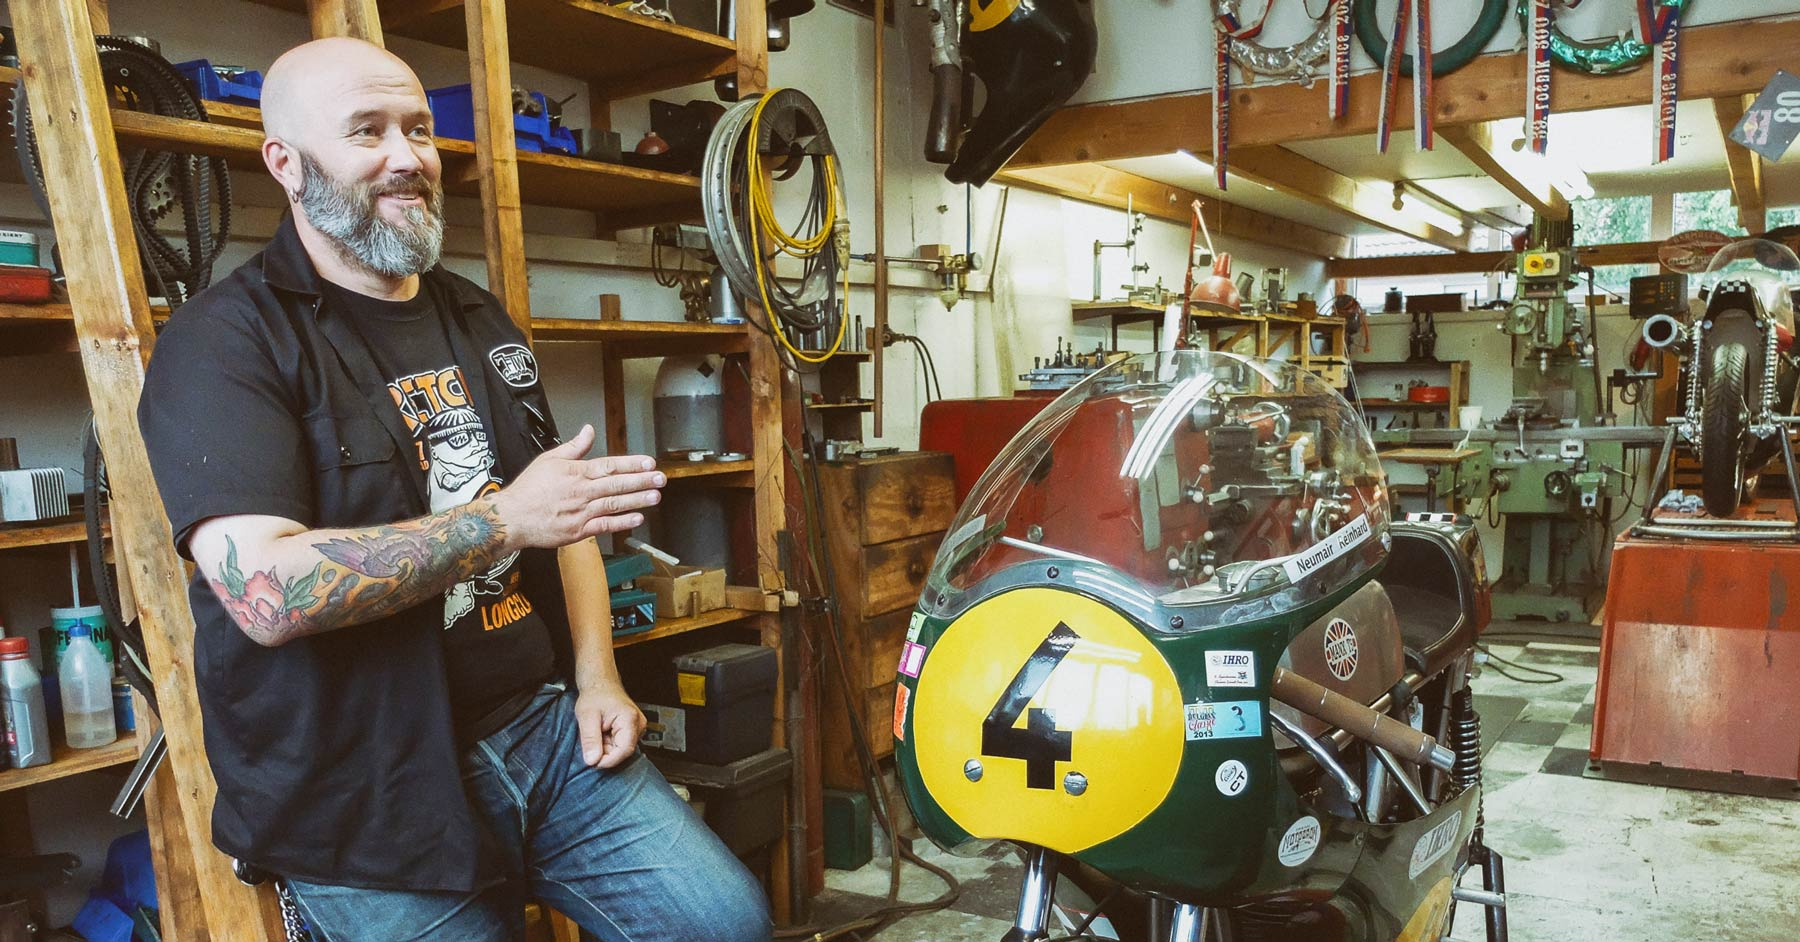 Behind the scenes with the BMW R nineT designers